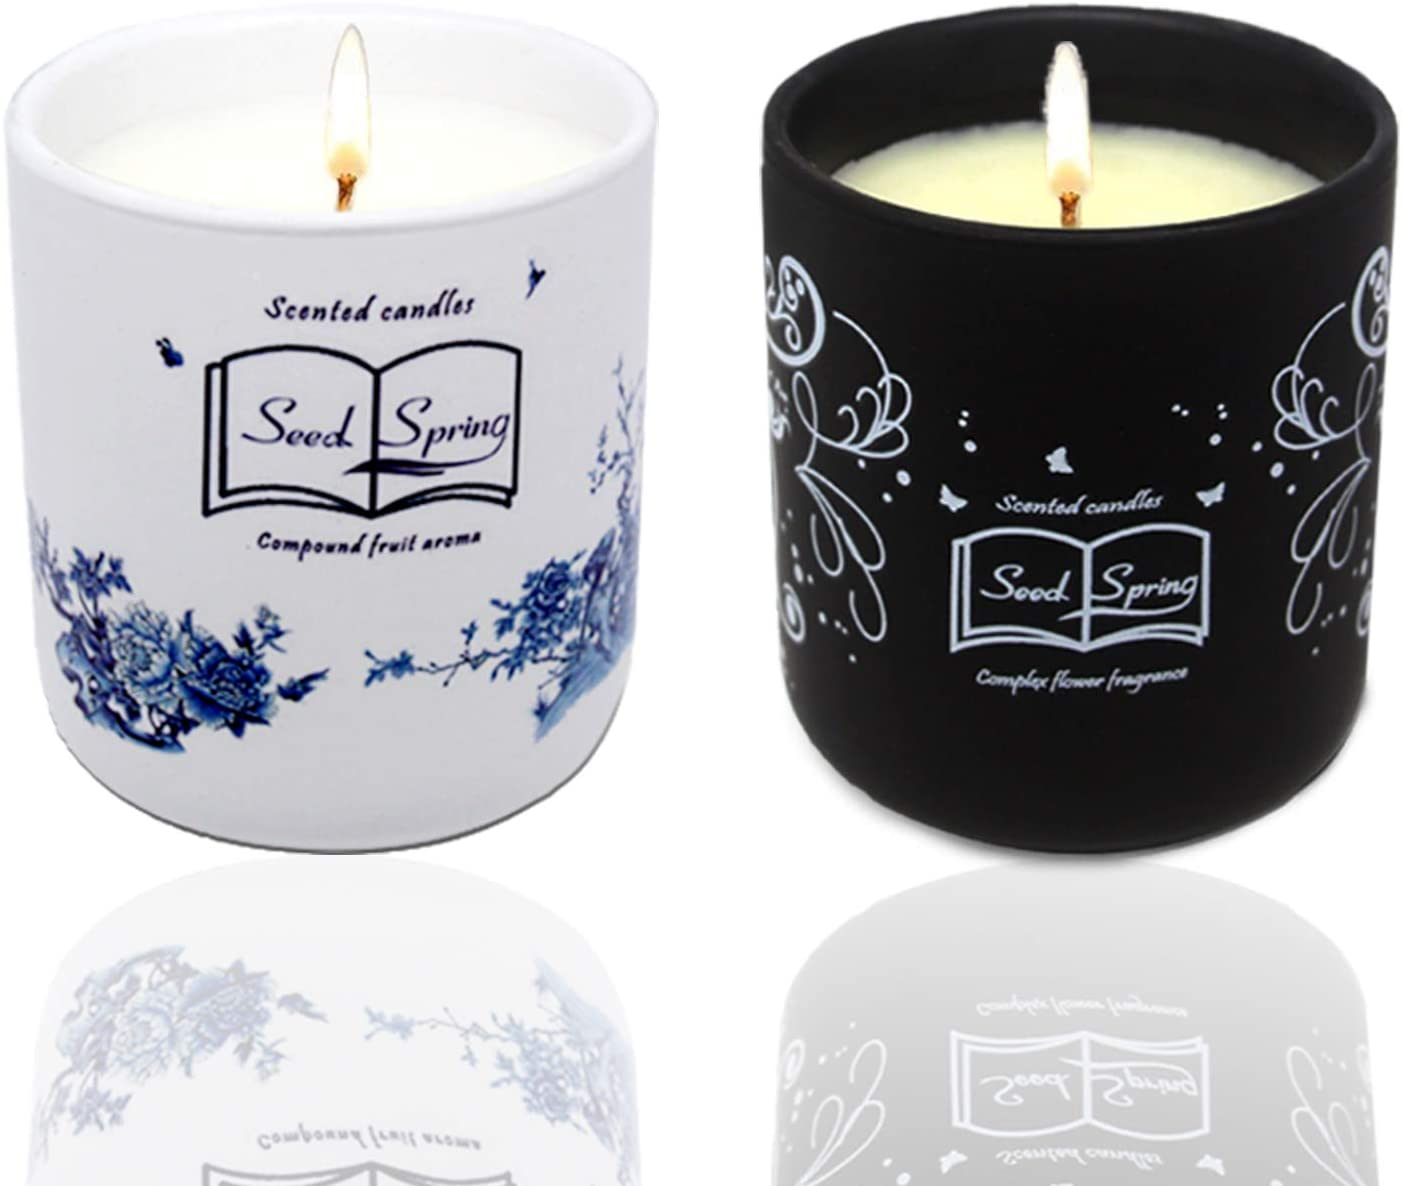 Candle Luxury Scented Soy Orange Sales AppleStrawberry Courier shipping free shipping Blen